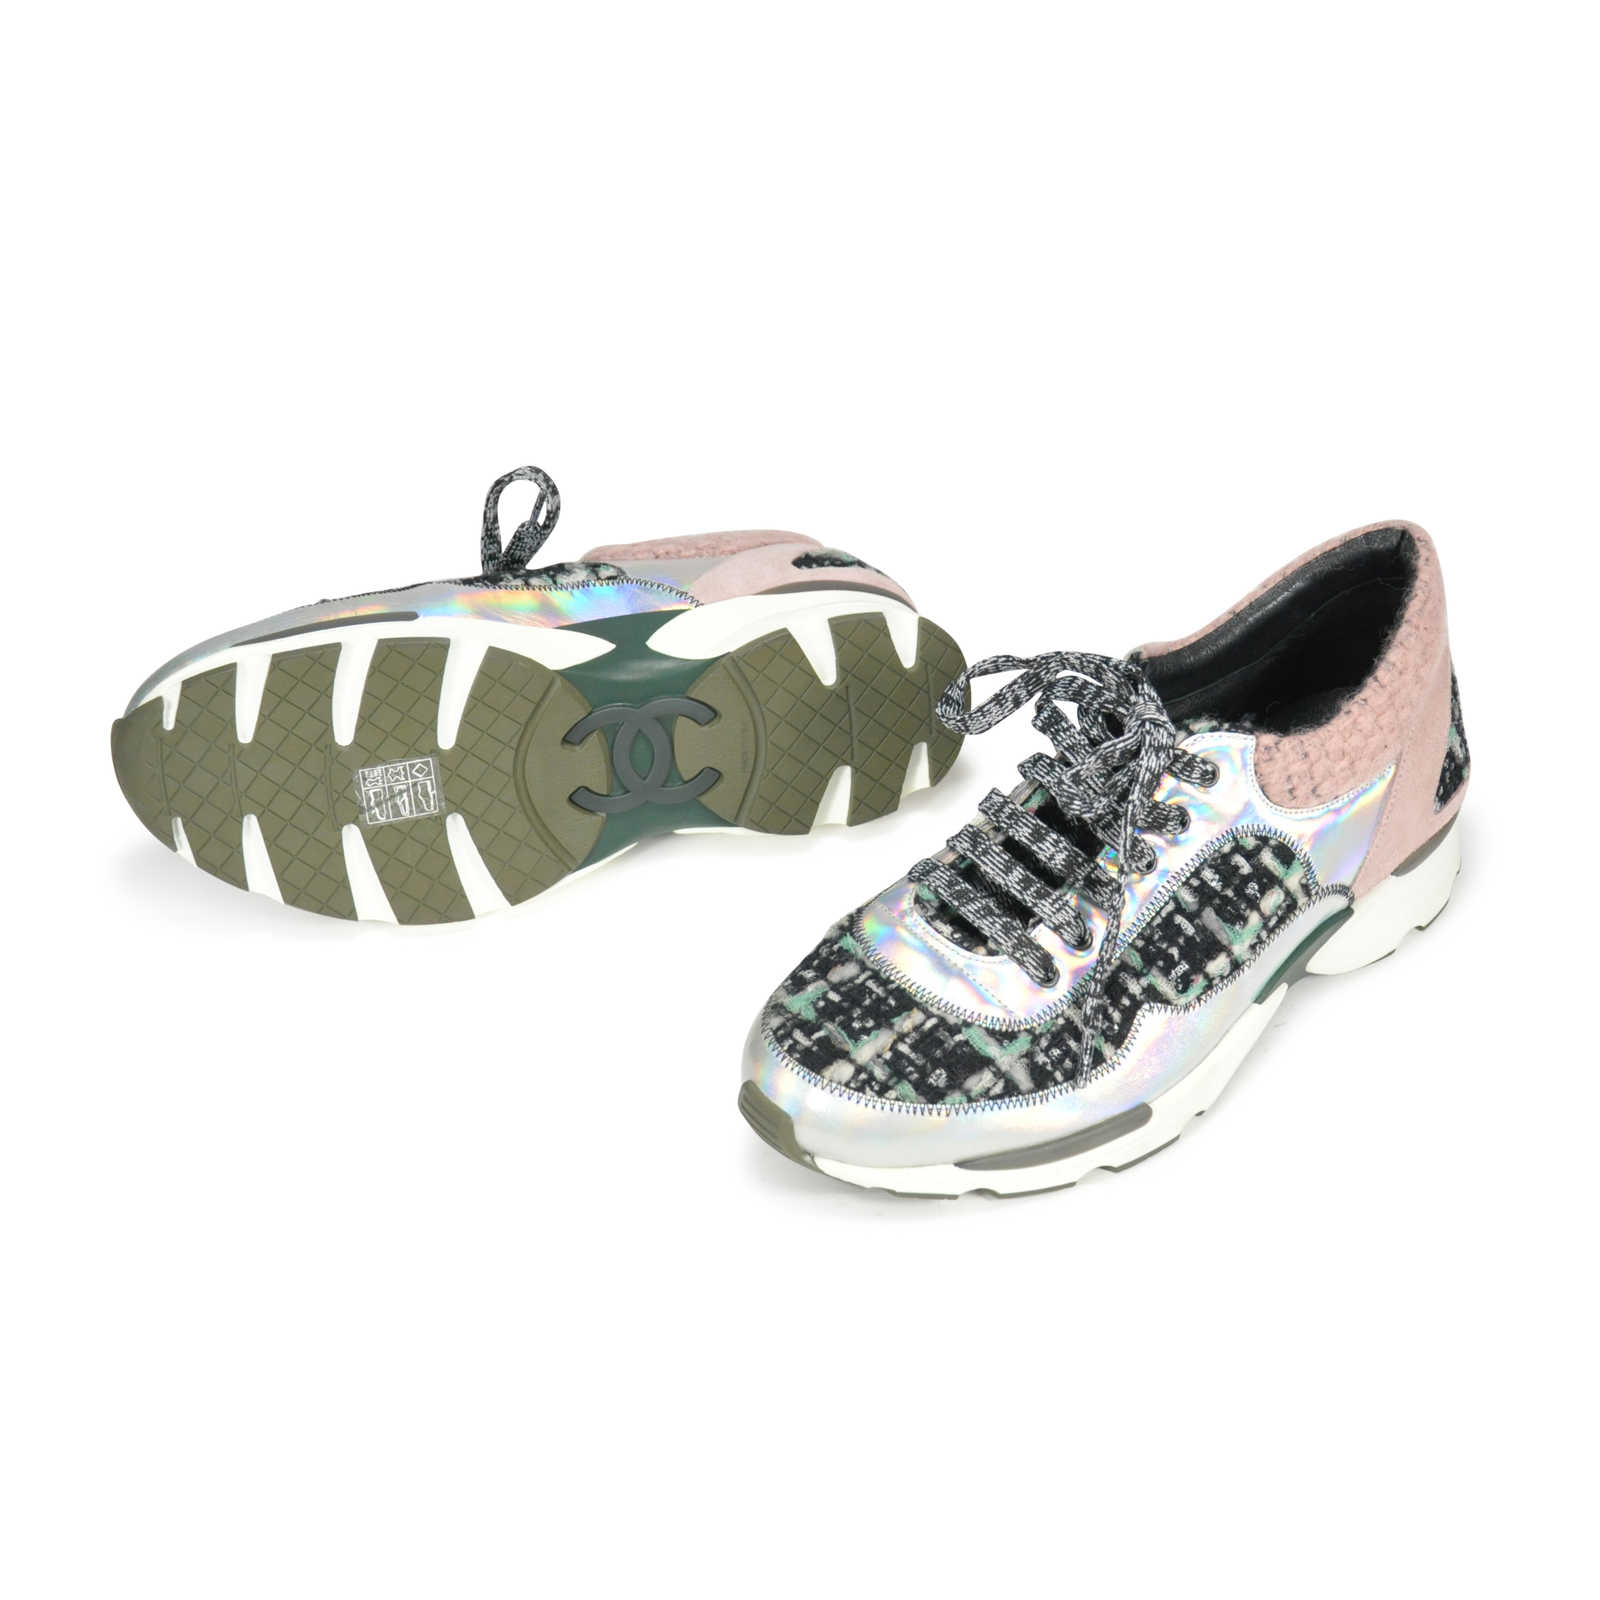 b2f2a4856 ... Authentic Second Hand Chanel Tweed Sneakers (PSS-145-00073) - Thumbnail  1 ...